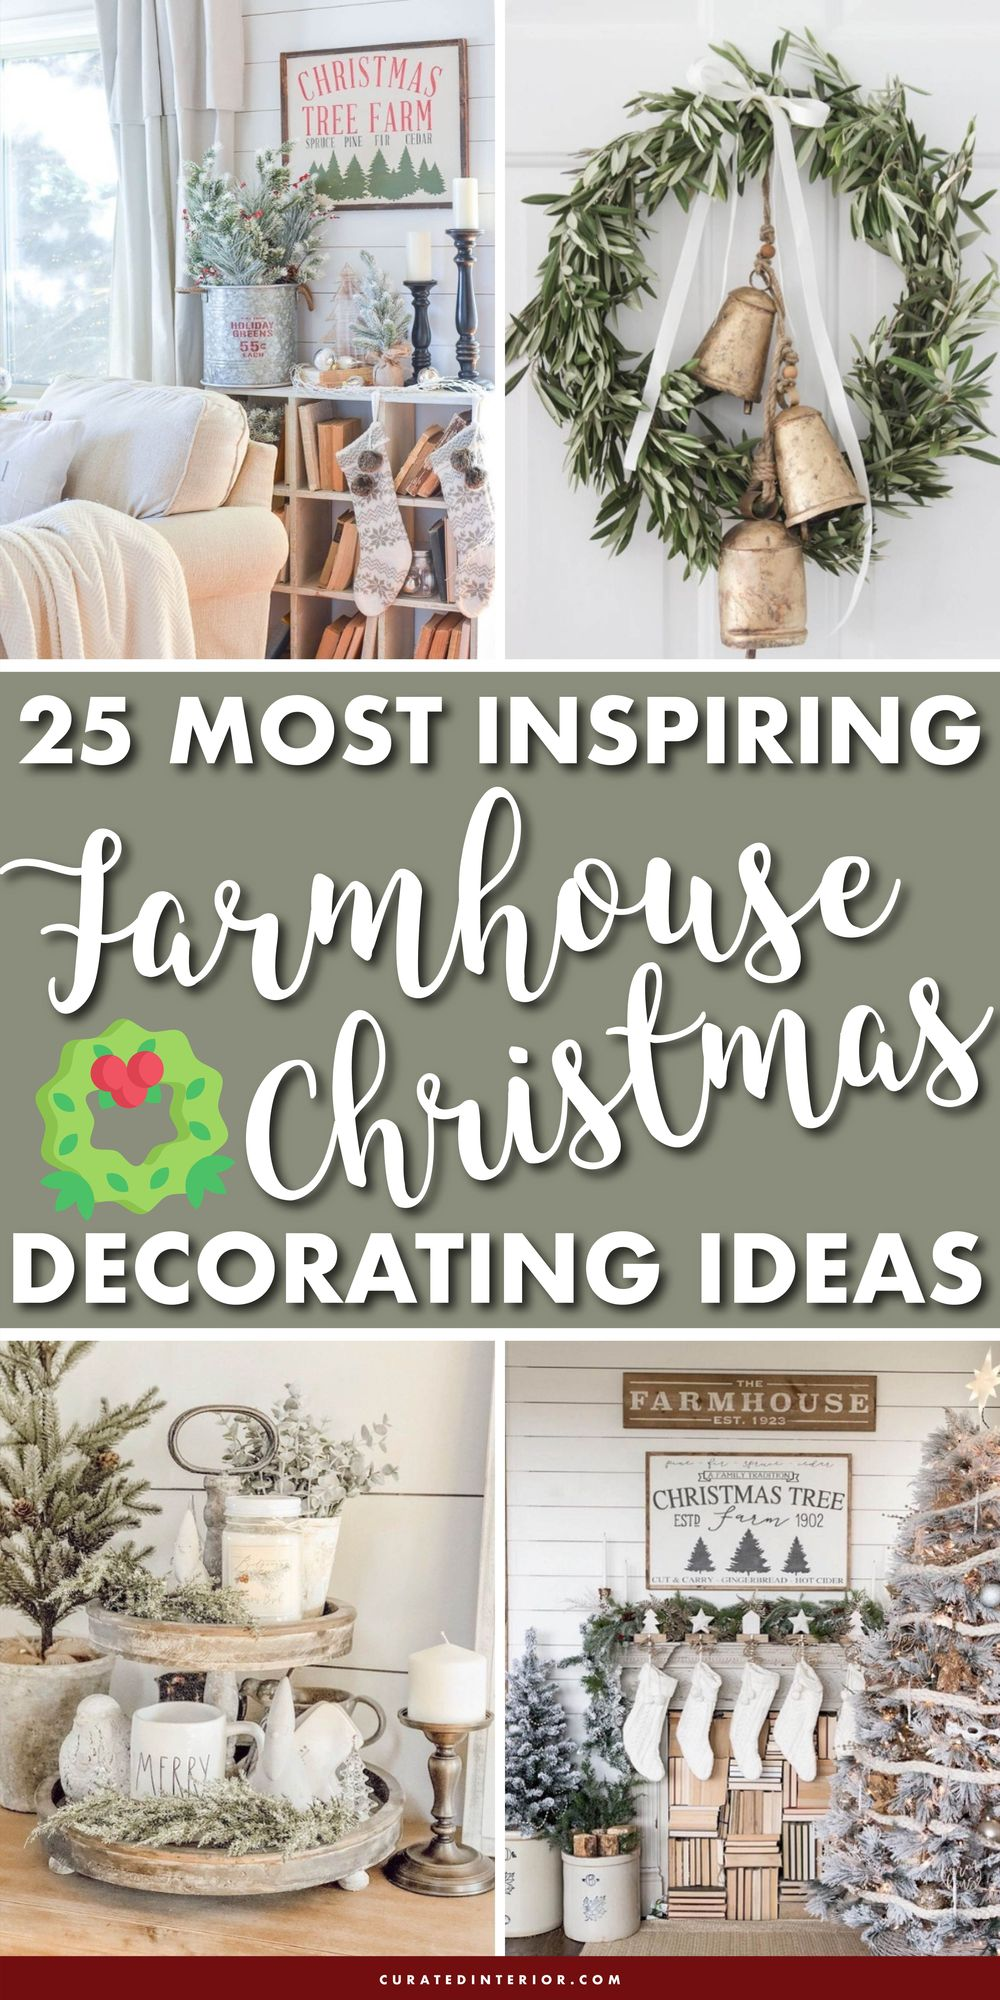 25 Most Inspiring Farmhouse Christmas Decorating Ideas #FarmhouseChristmas #FarmhouseDecor